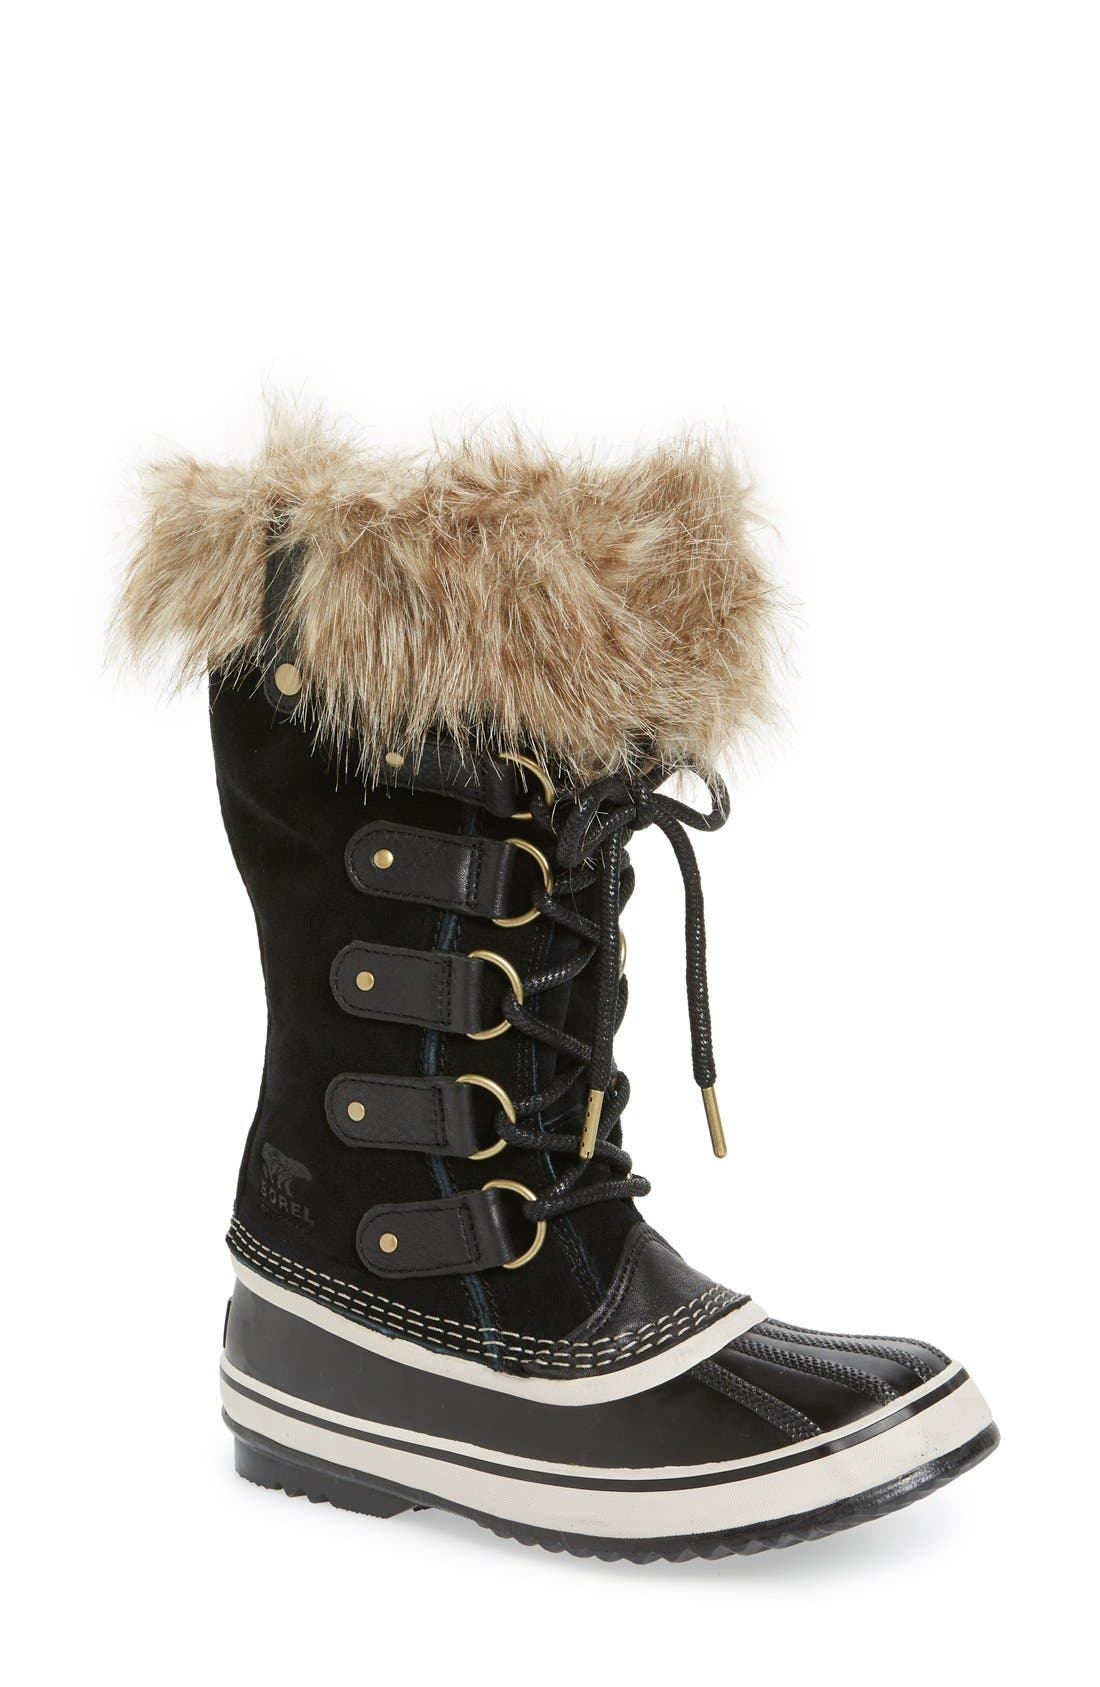 9f9b32dc311 Sorel  Joan Of Arctic  Waterproof Snow Boot